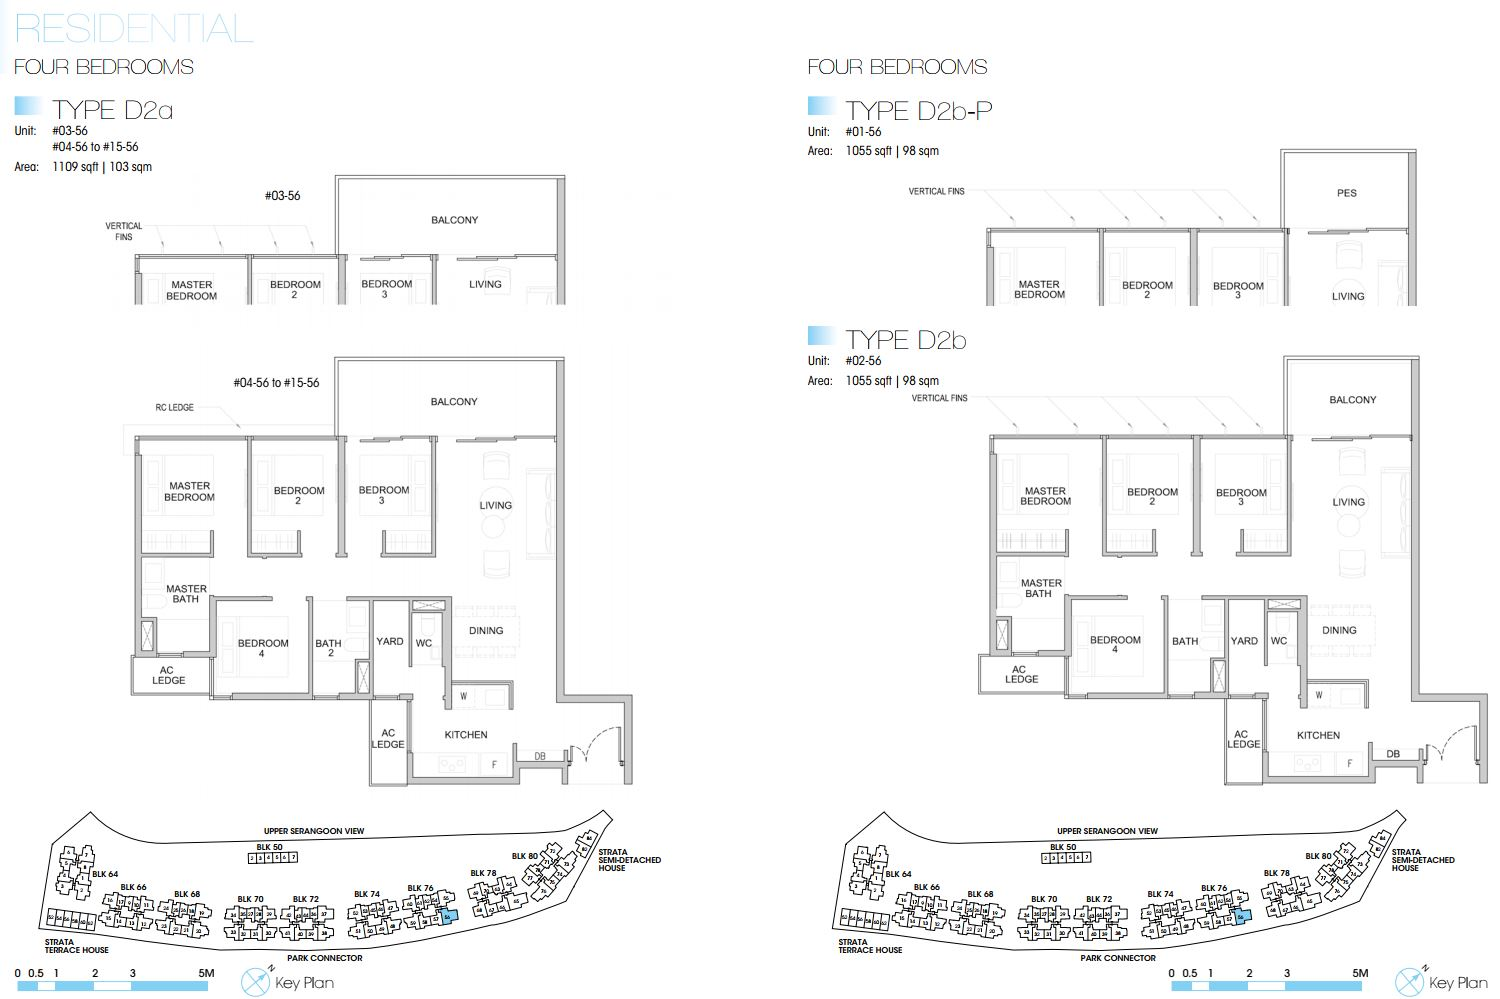 Kingsford Waterbay FloorPlan - 4 Bedroom Type D2